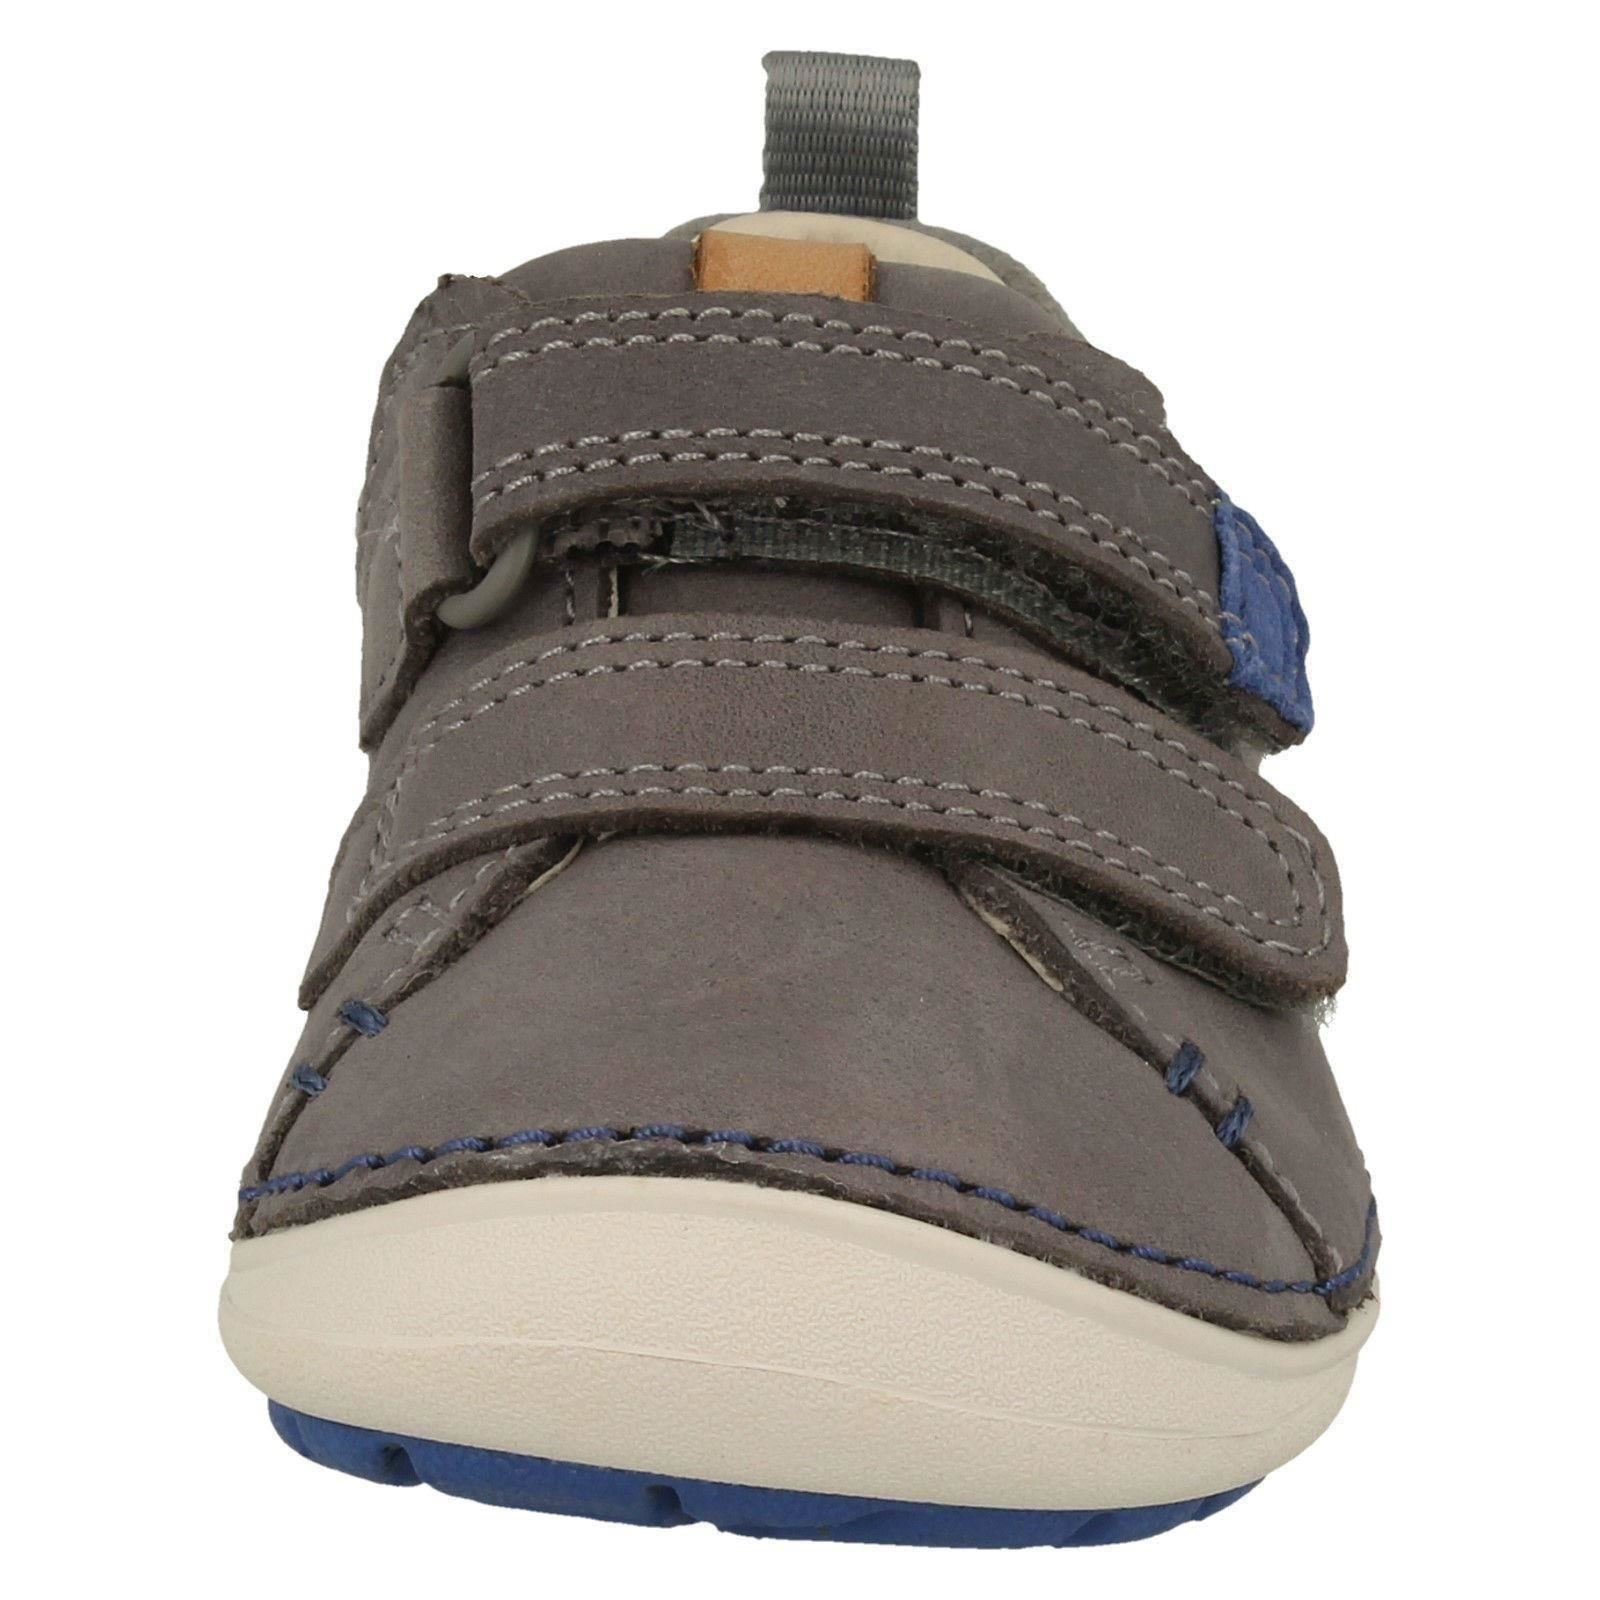 Clarks Boys First Shoes Softly Toby